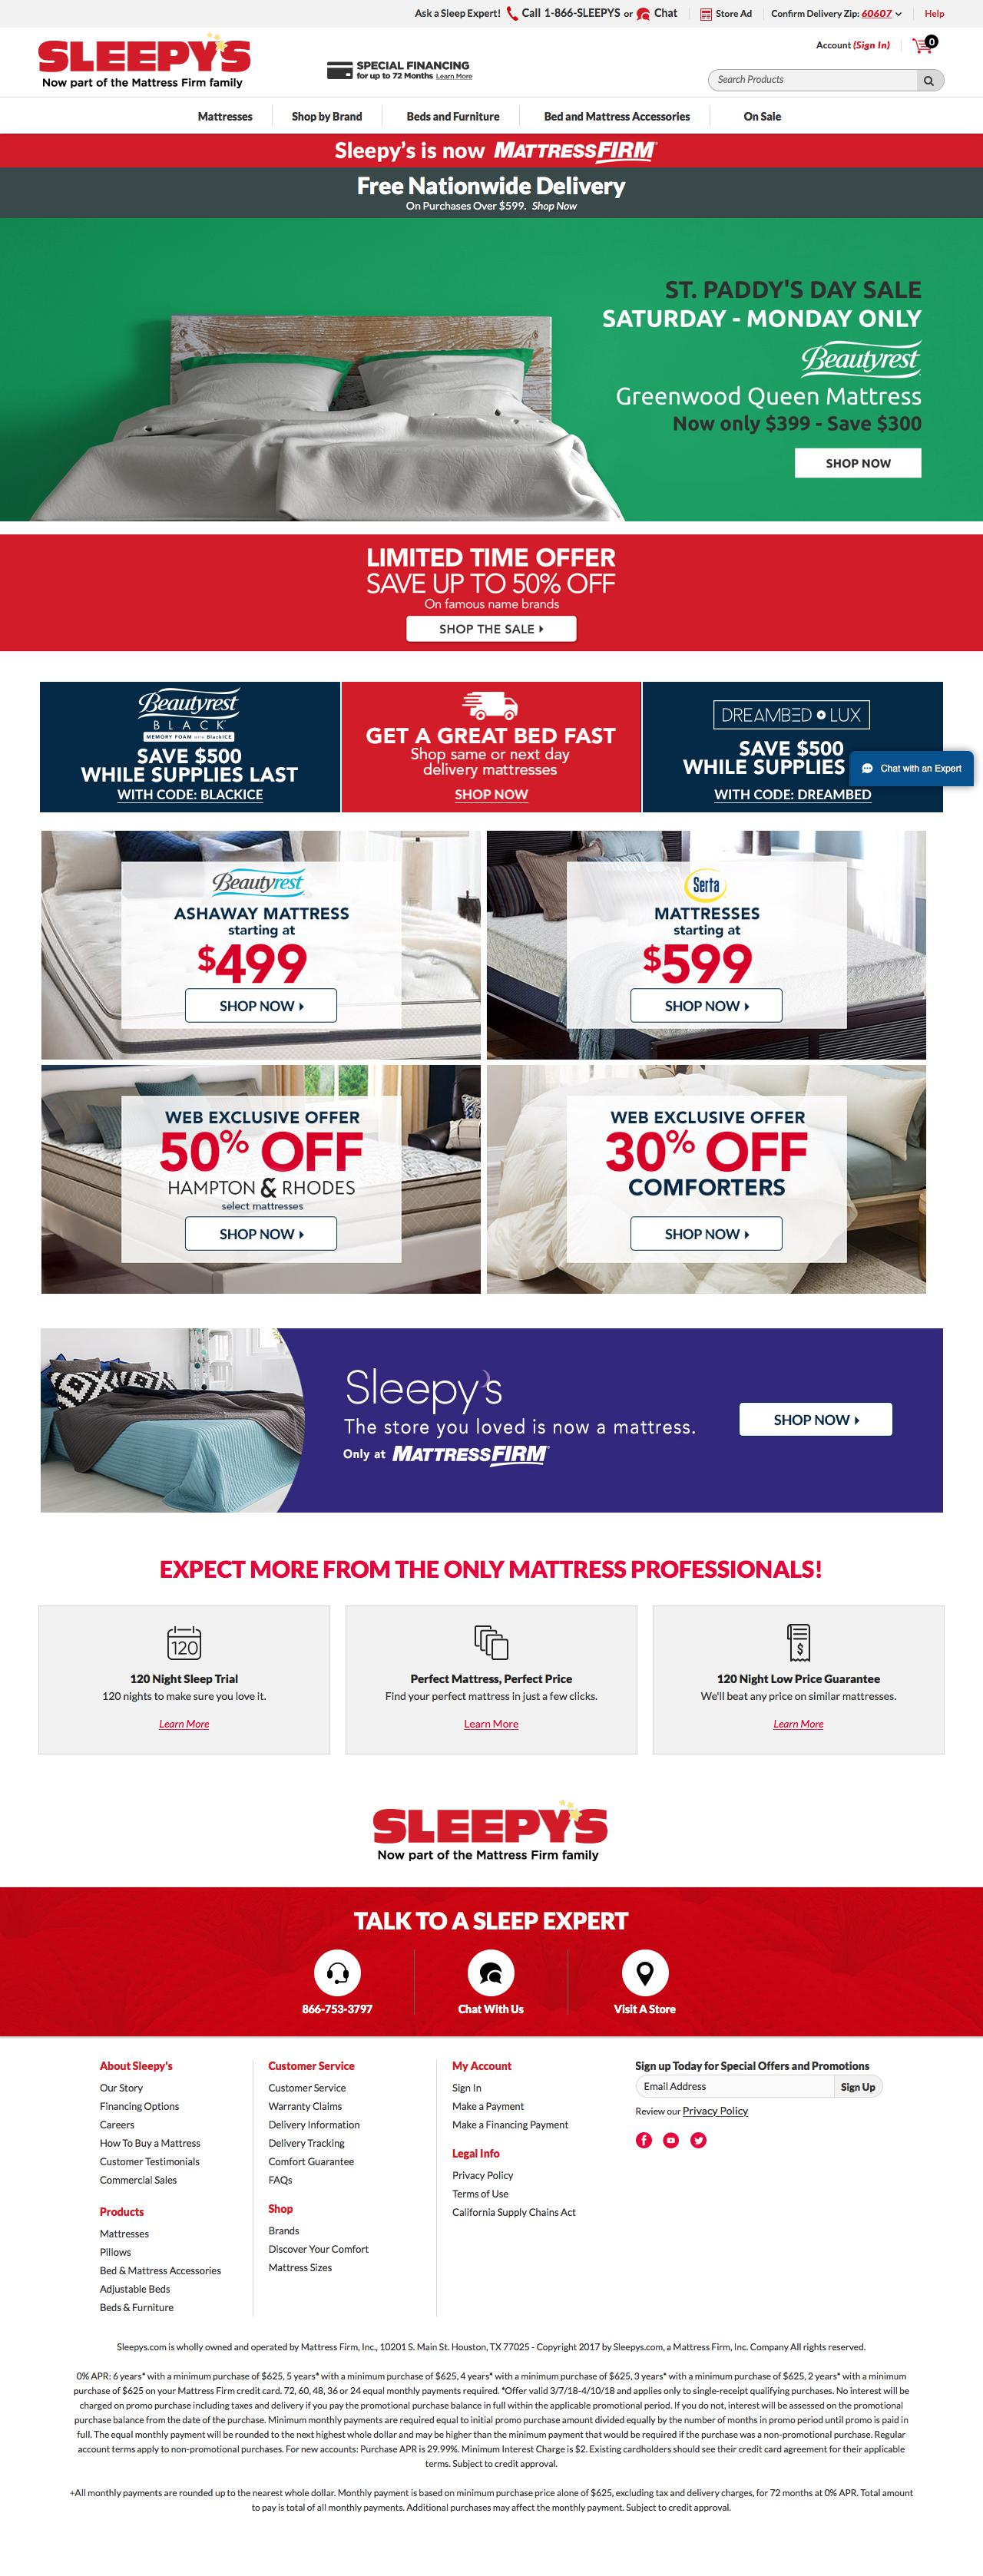 Sleepy's | Competitive Intelligence and Insights | Crayon